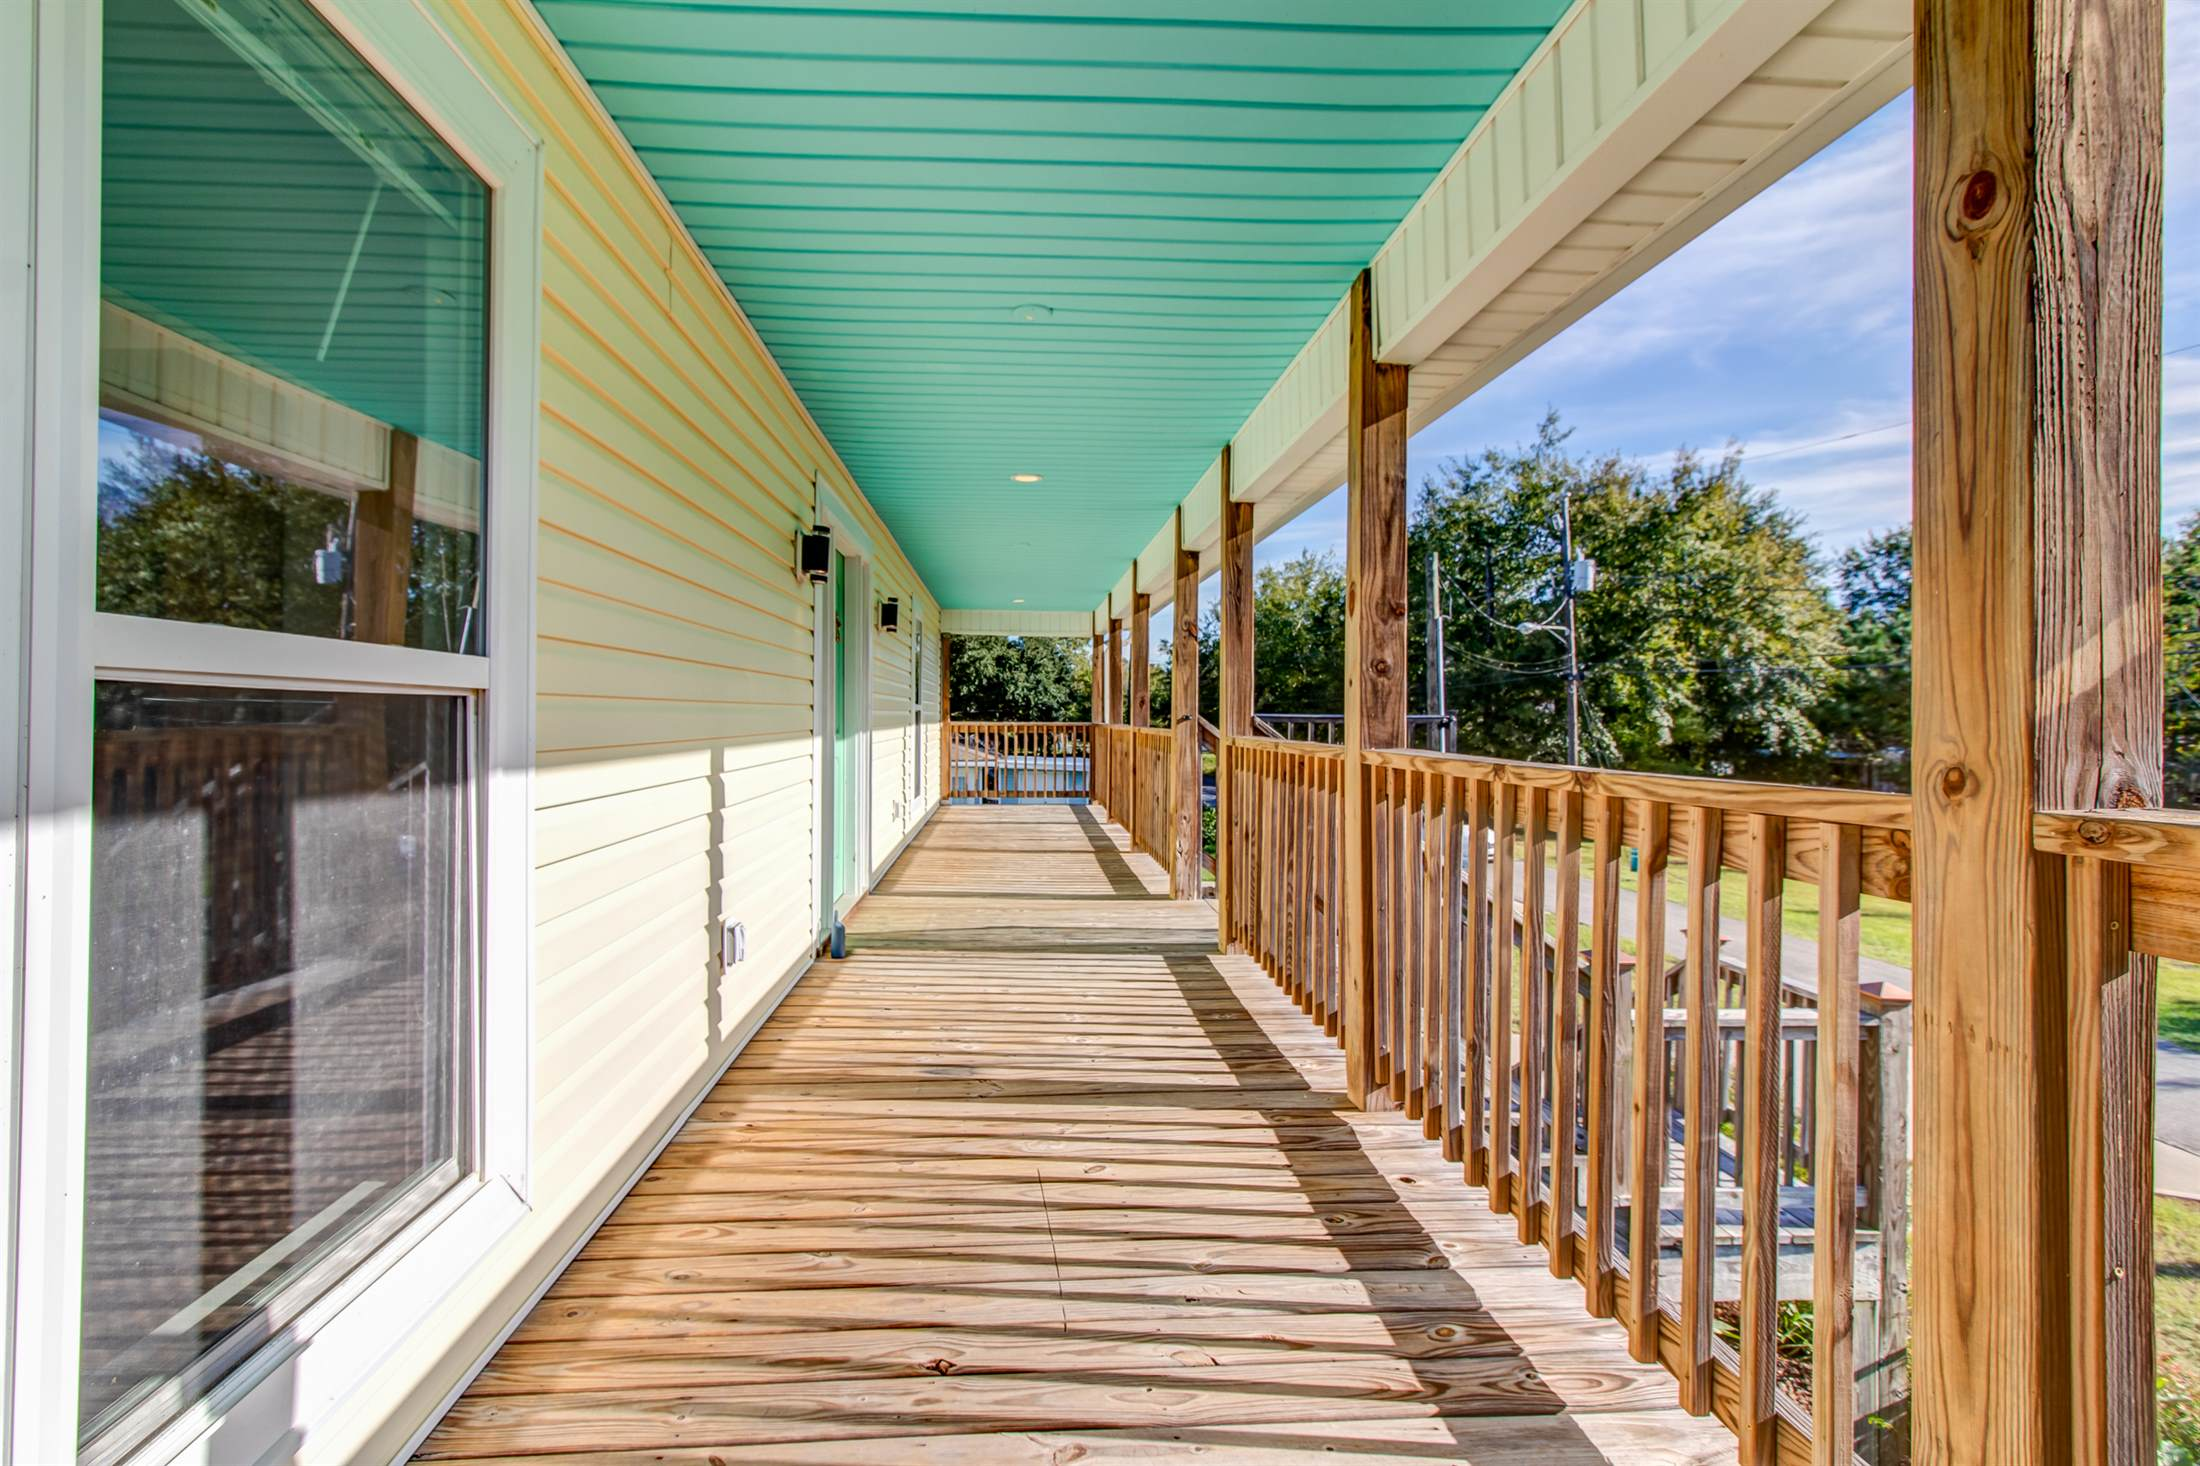 232 Hickey St Home, Waveland, MS 39576